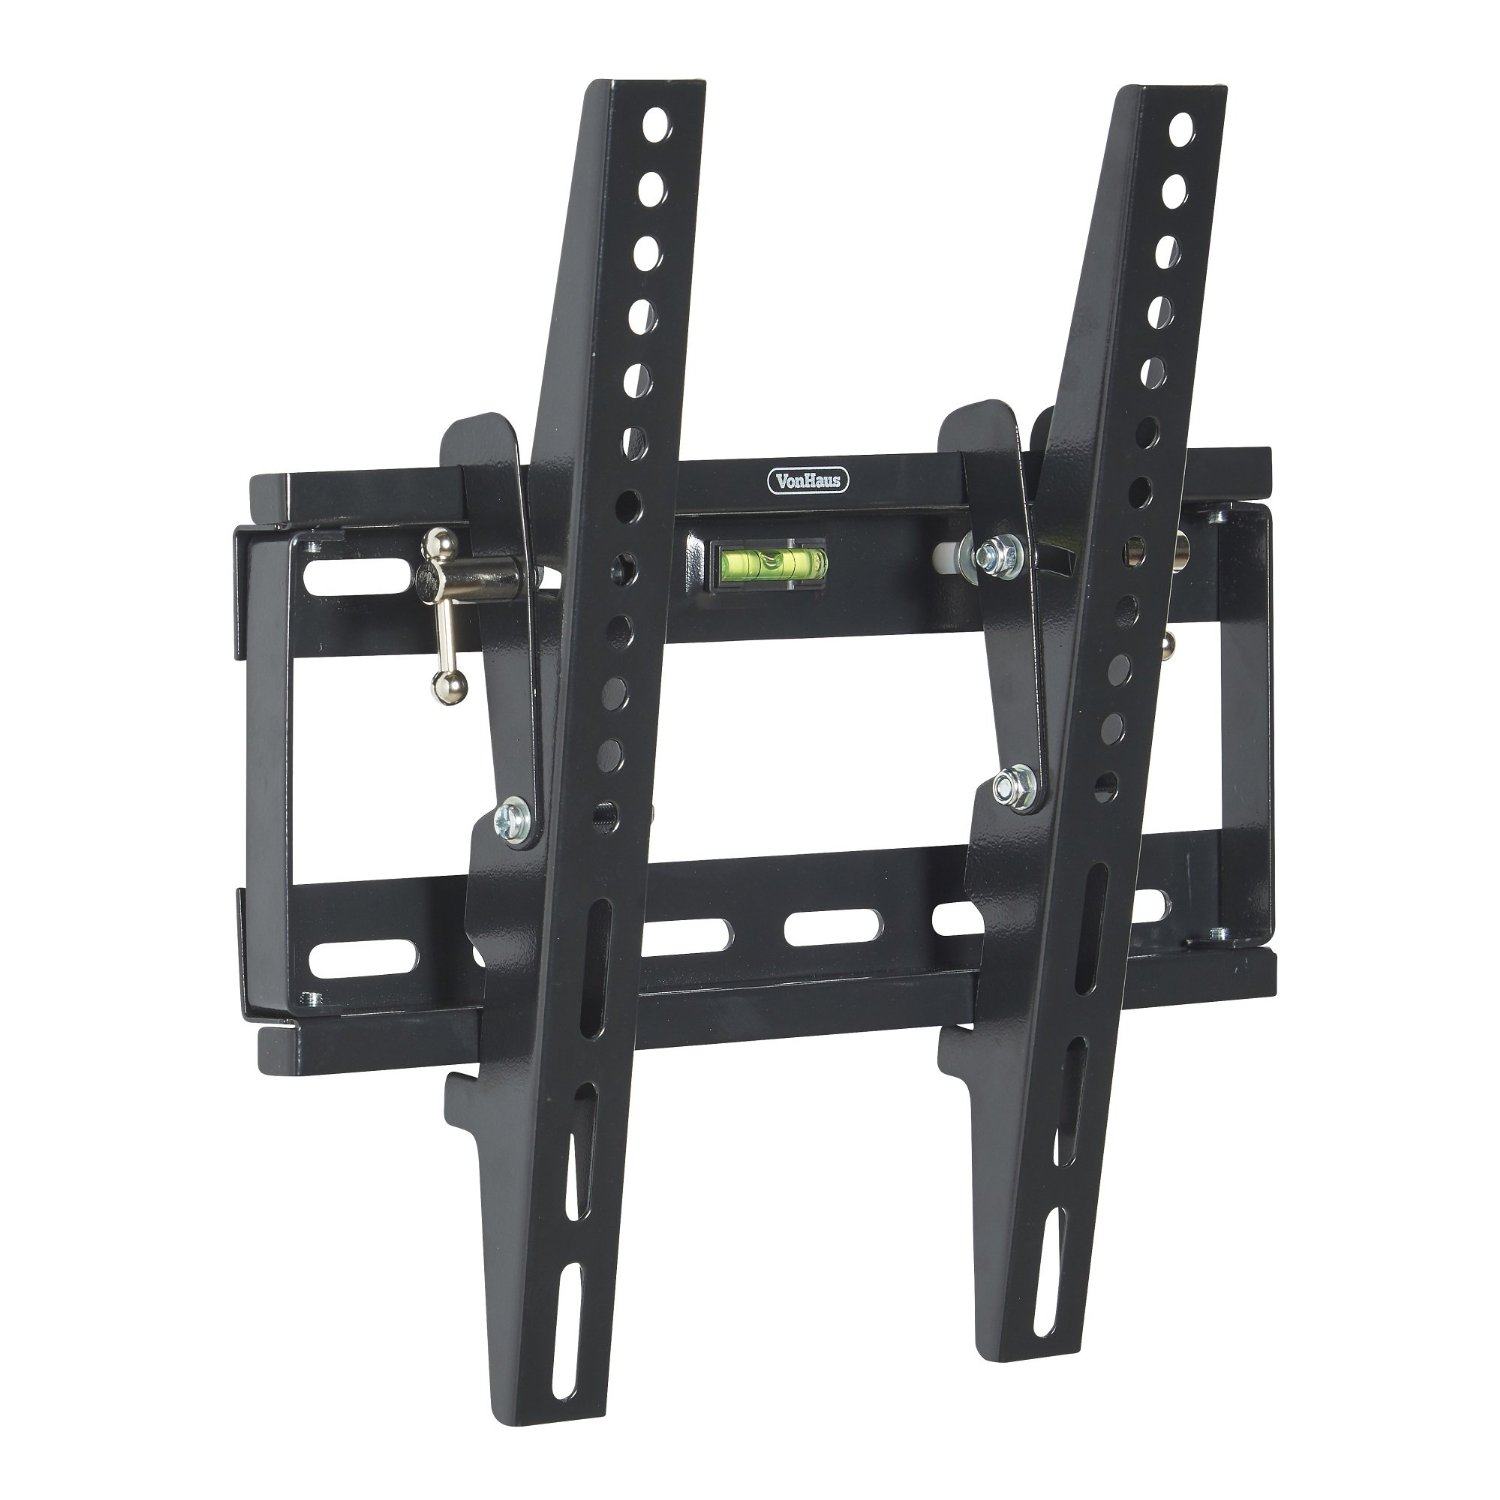 """VonHaus TV WALL MOUNT Fits All Models LCD, LED & Plasma TV - Samsung Sony Philips Toshiba - (17 - 37.5"""") - Super-Strength 165lbs load capacity with Tilt Mechanism"""